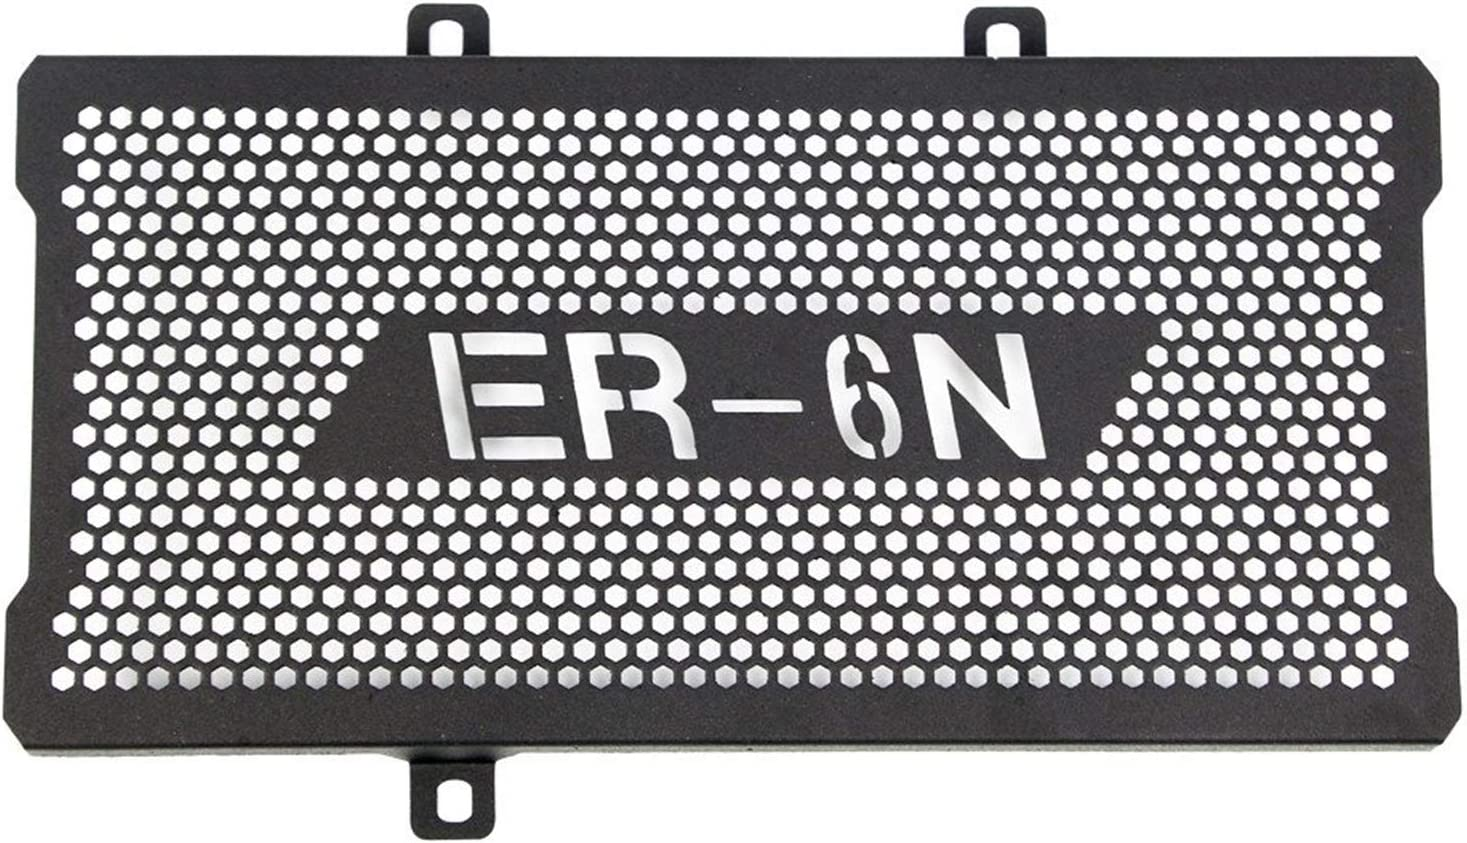 ZLLD Radiator Guard Grille 2021 model Motorcycle Accessories Max 80% OFF